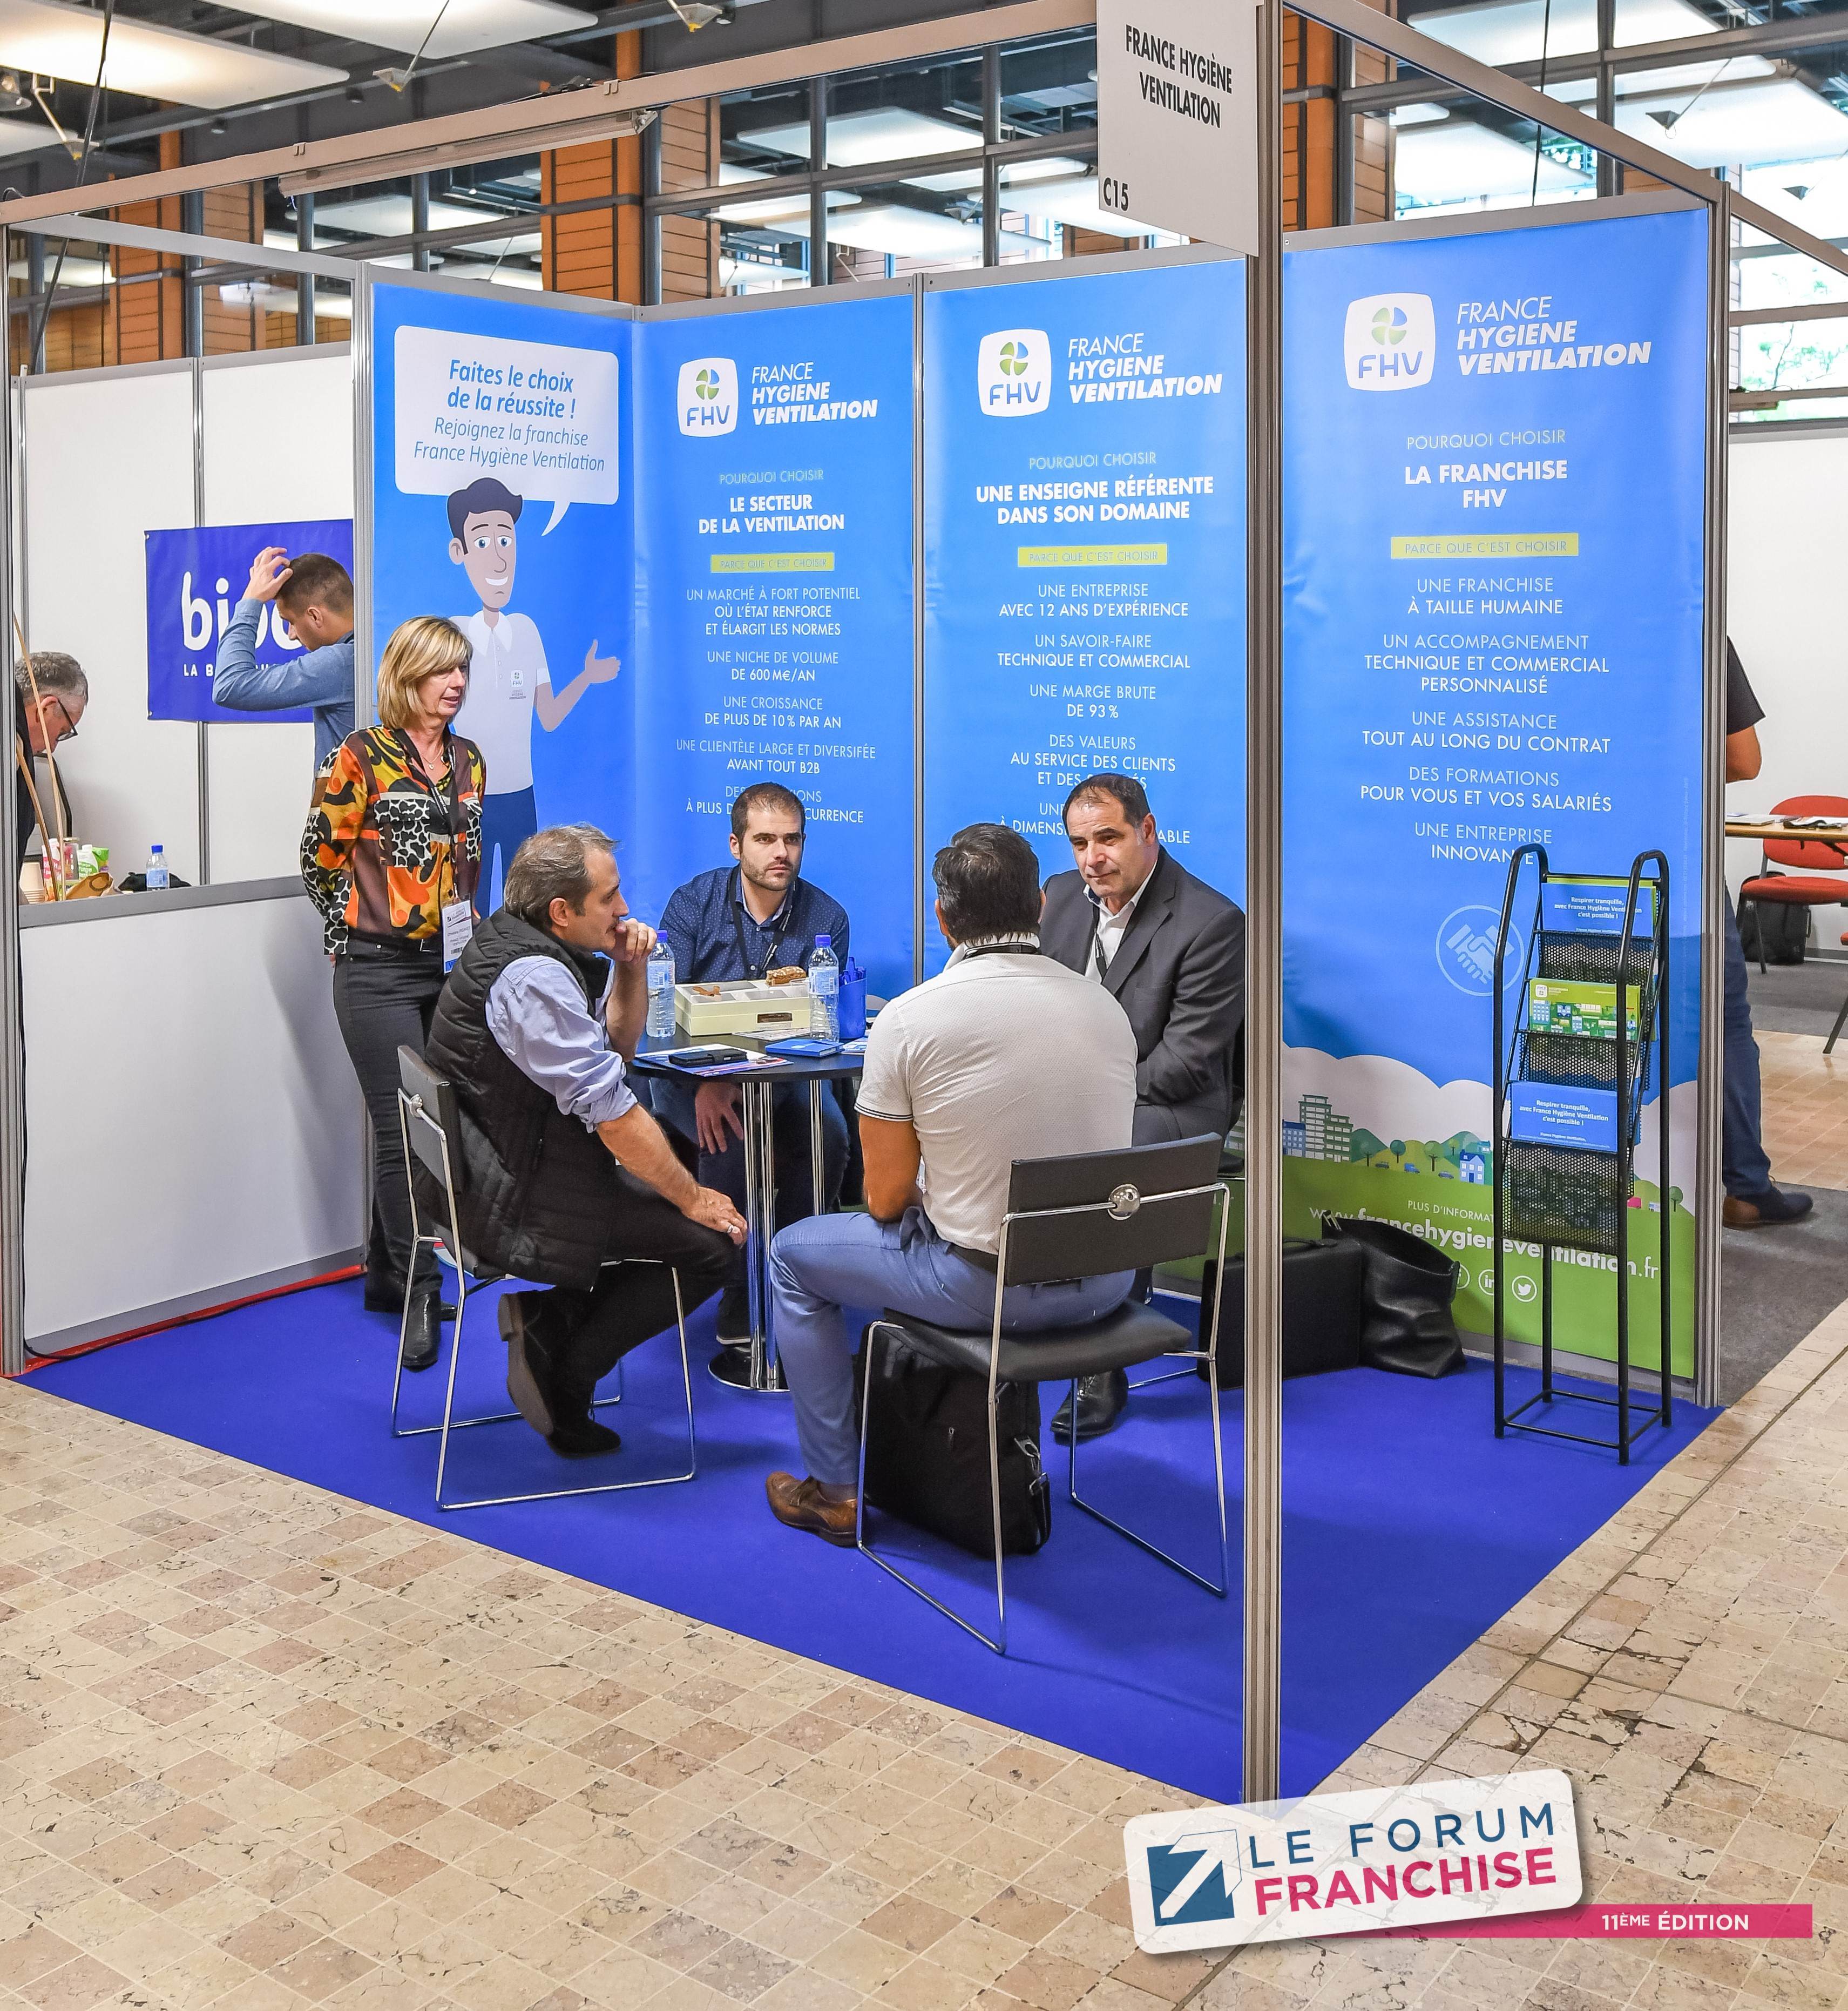 Forum Franchise 2019 France Hygiène Ventilation ©tekoaphotos